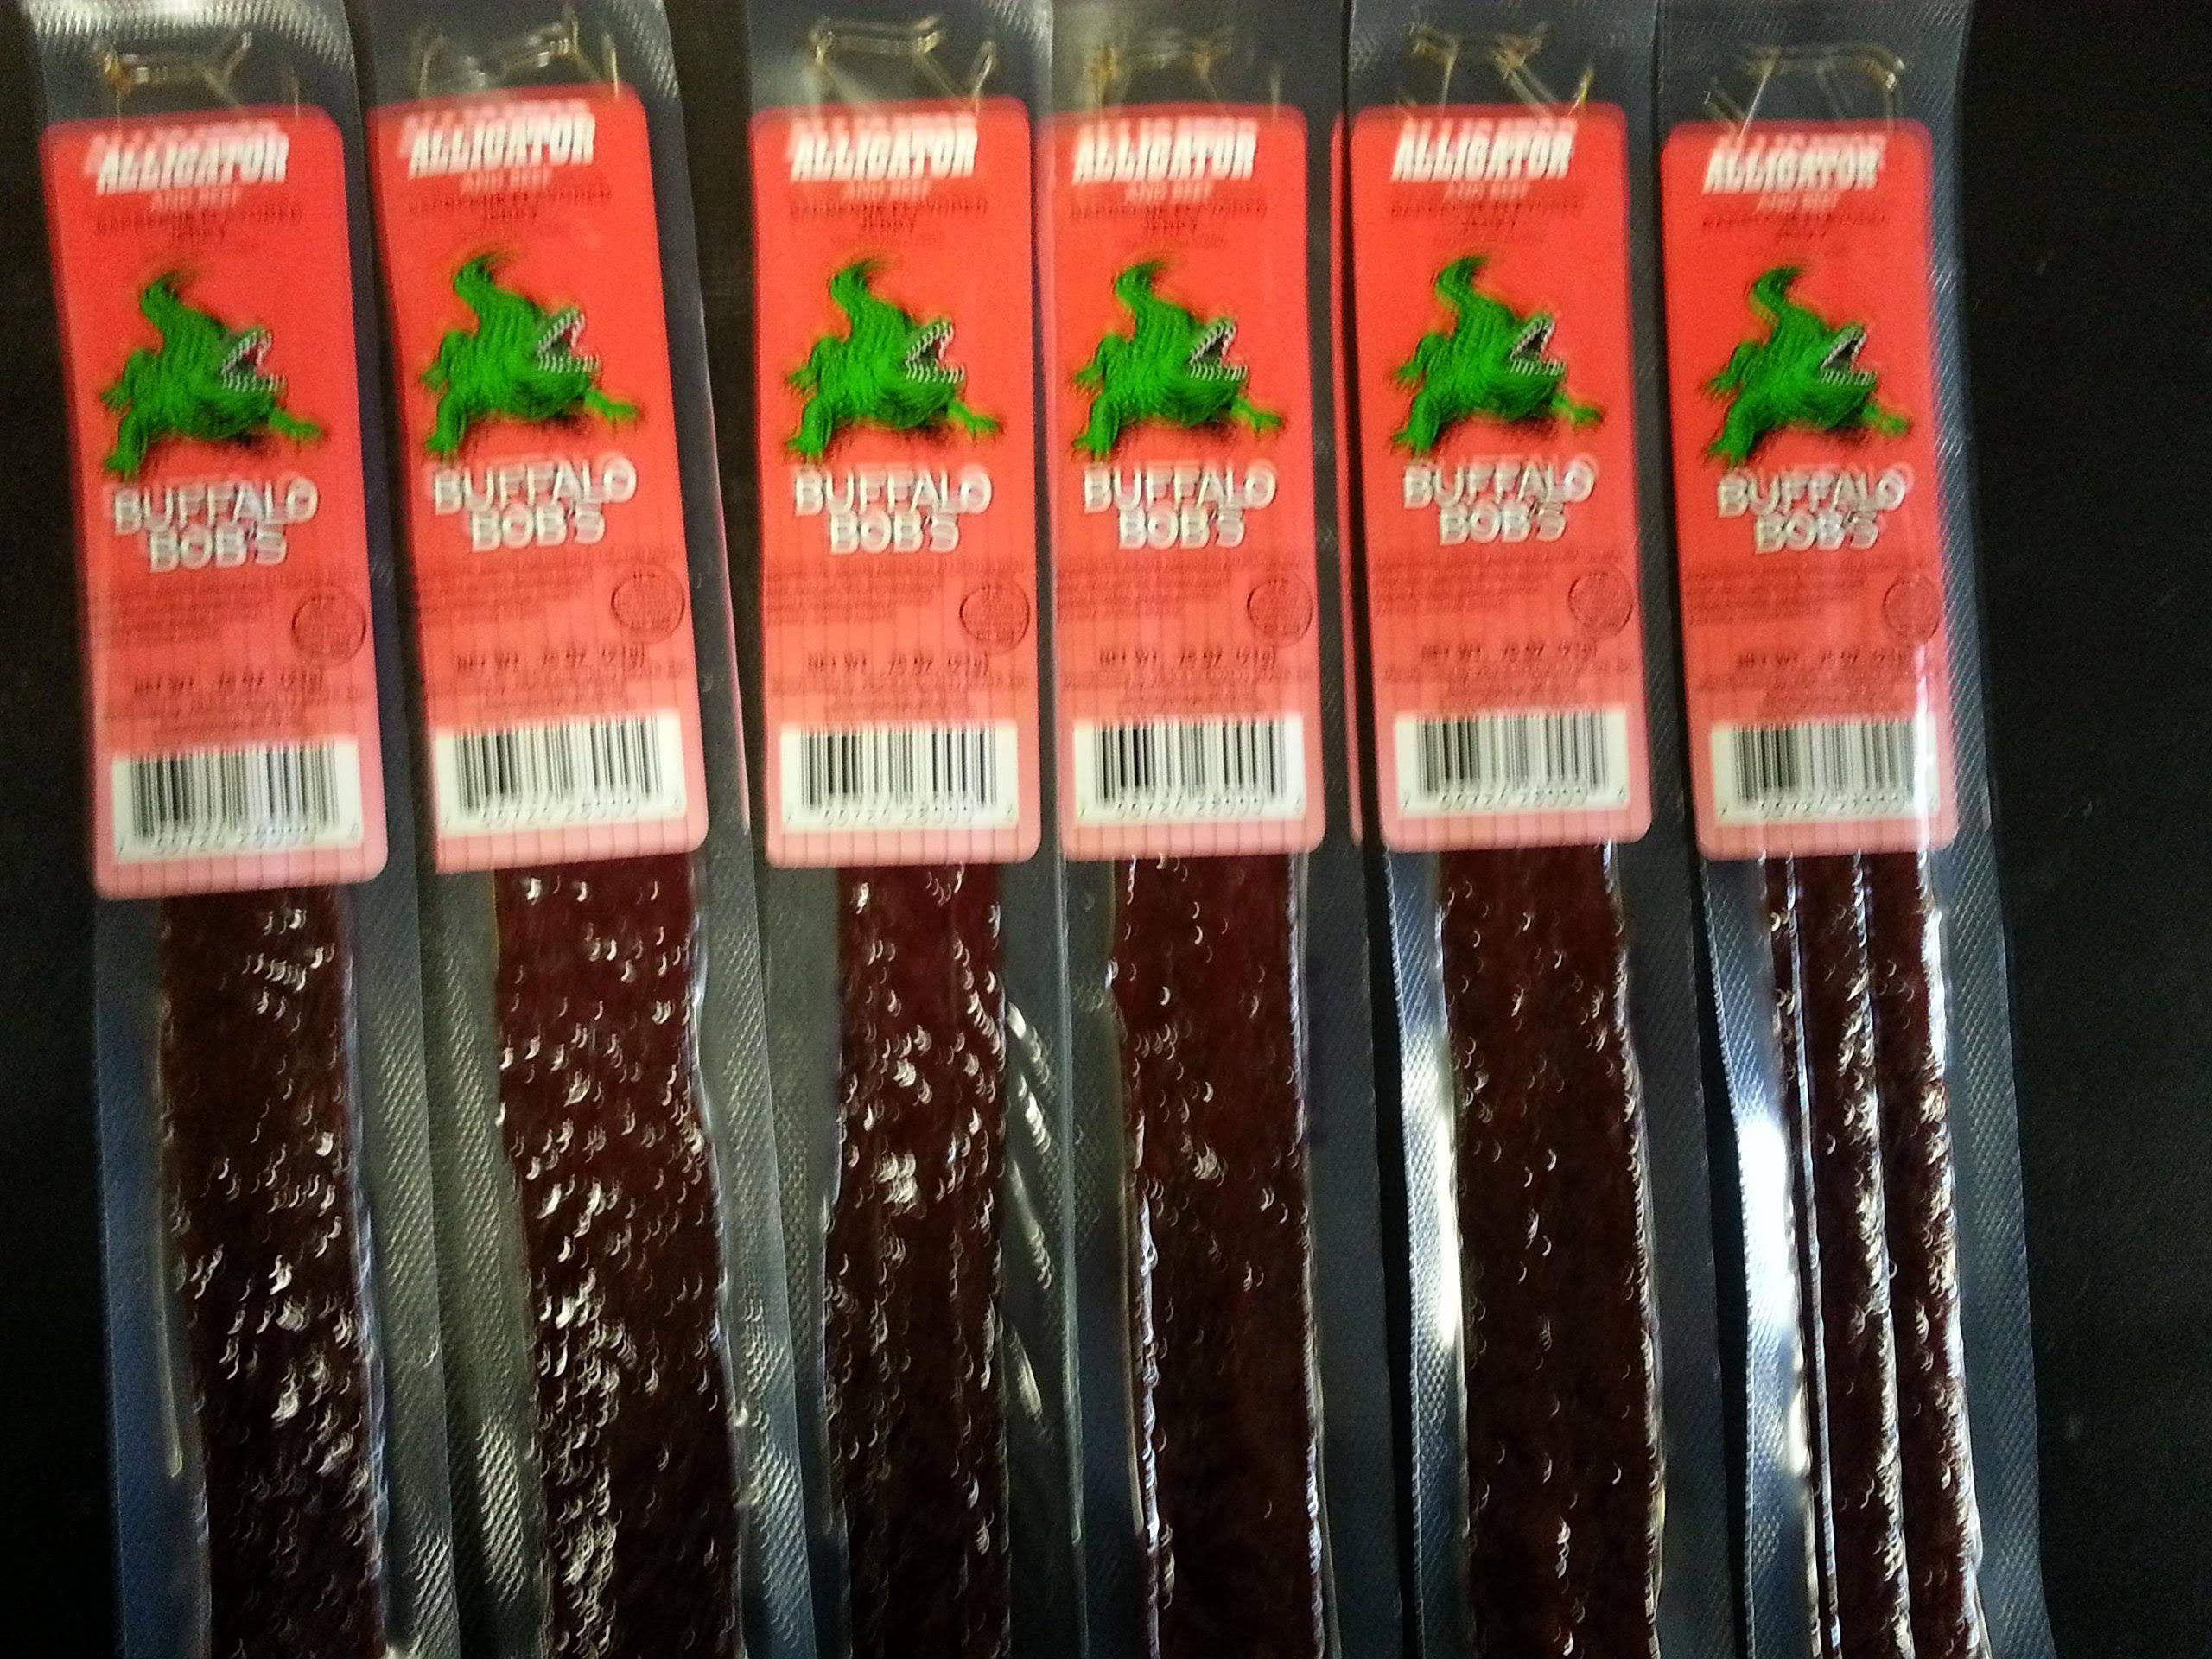 Buffalo Bob's Alligator Cajun Jerky Stick - 1 oz